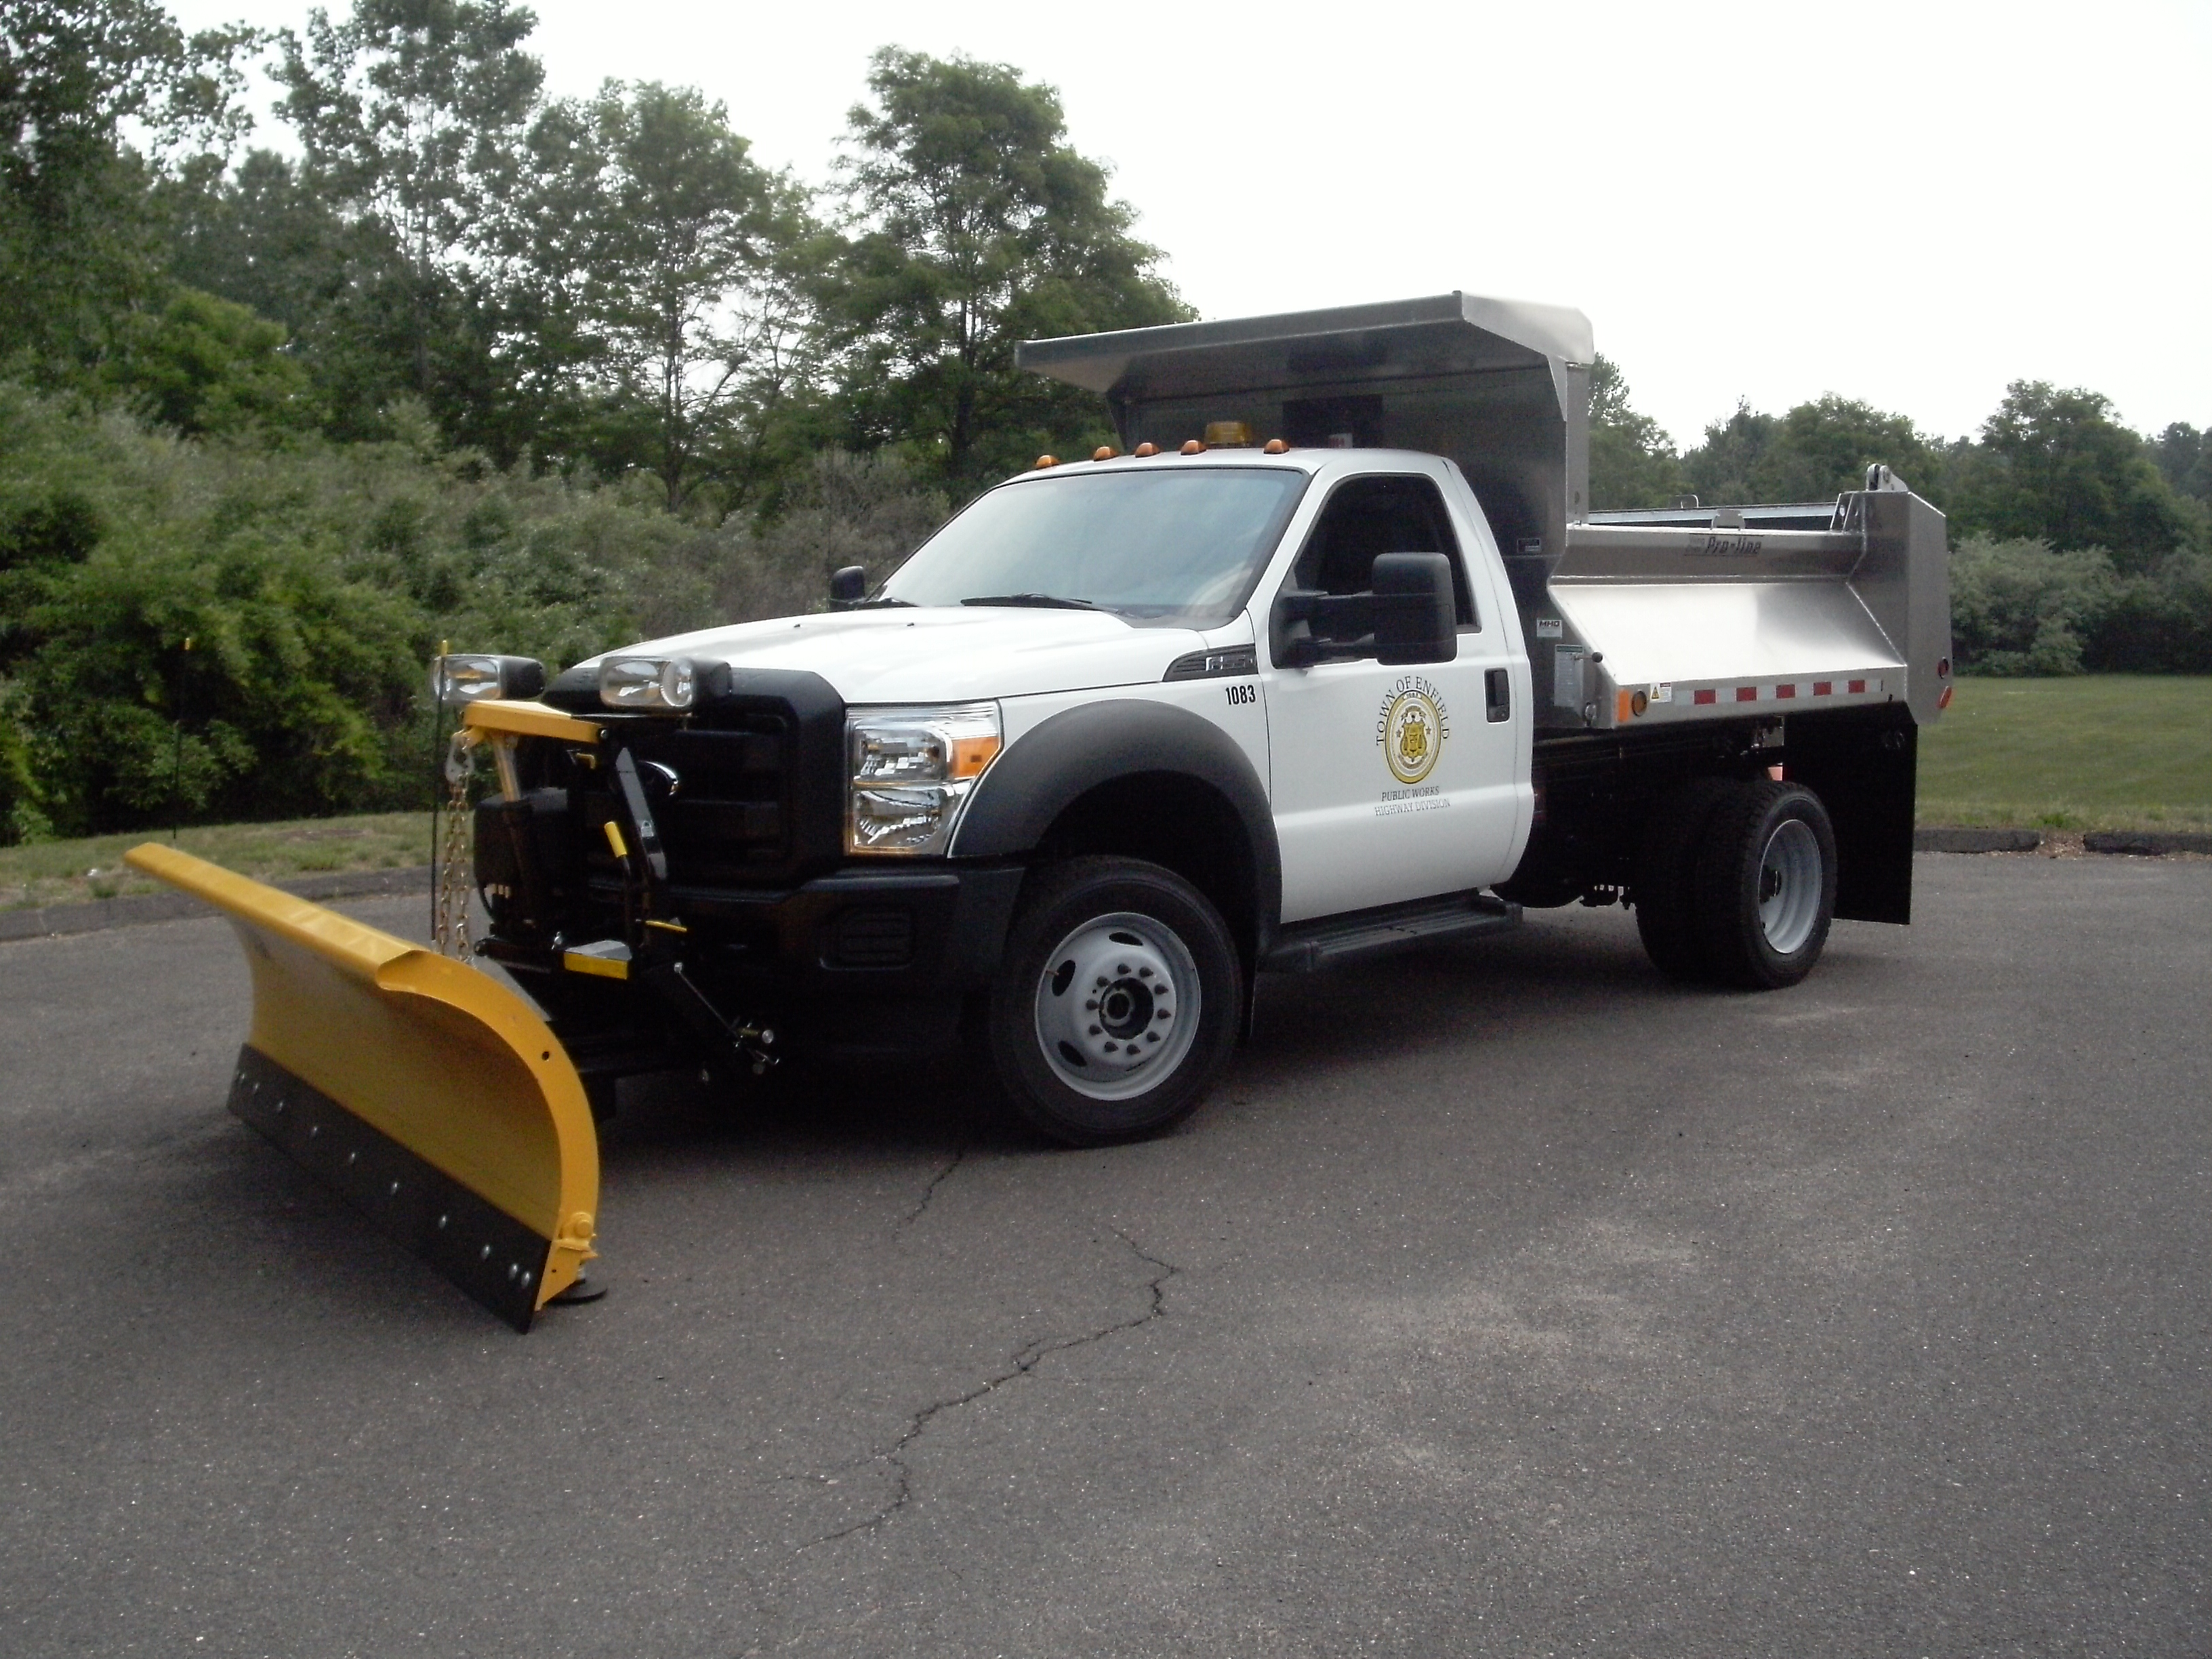 This truck replaced a 20-year old patch truck.  This new truck can also be used for snow plowing.